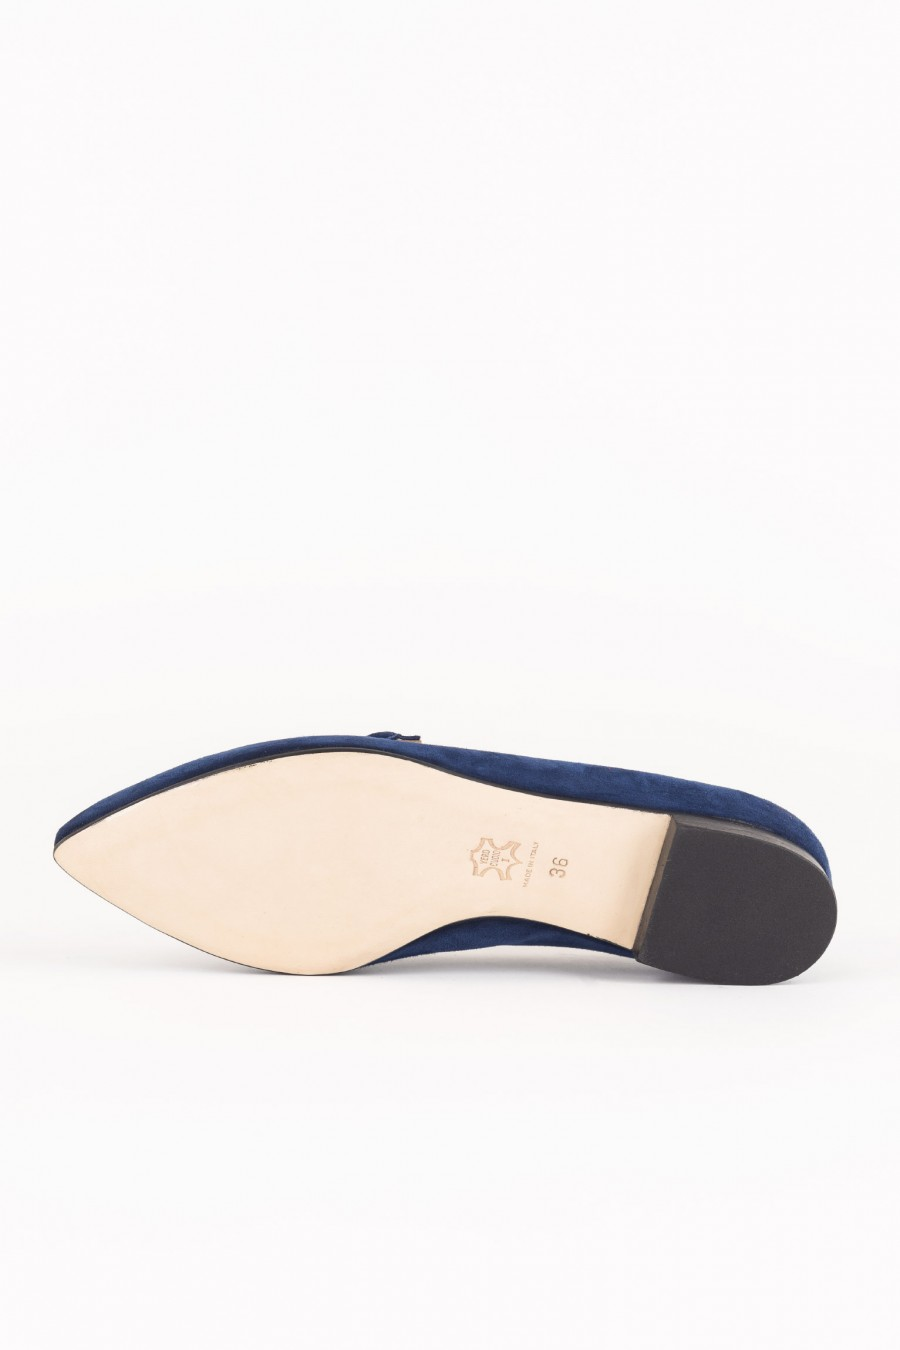 Blue pointy flats